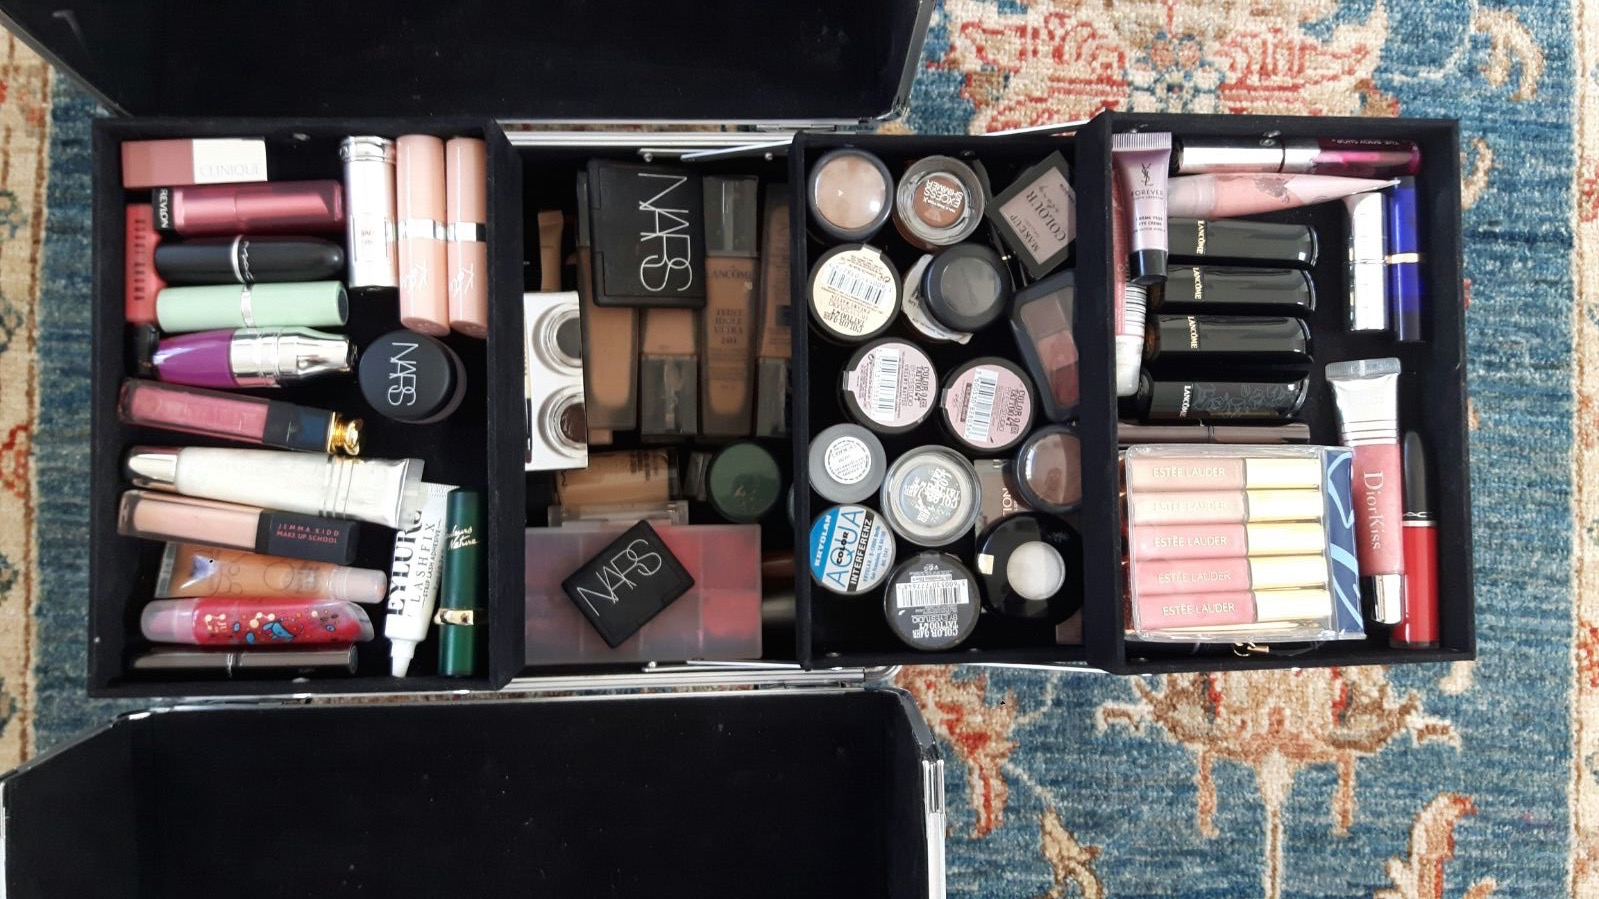 Amina's makeup box flatlay photo